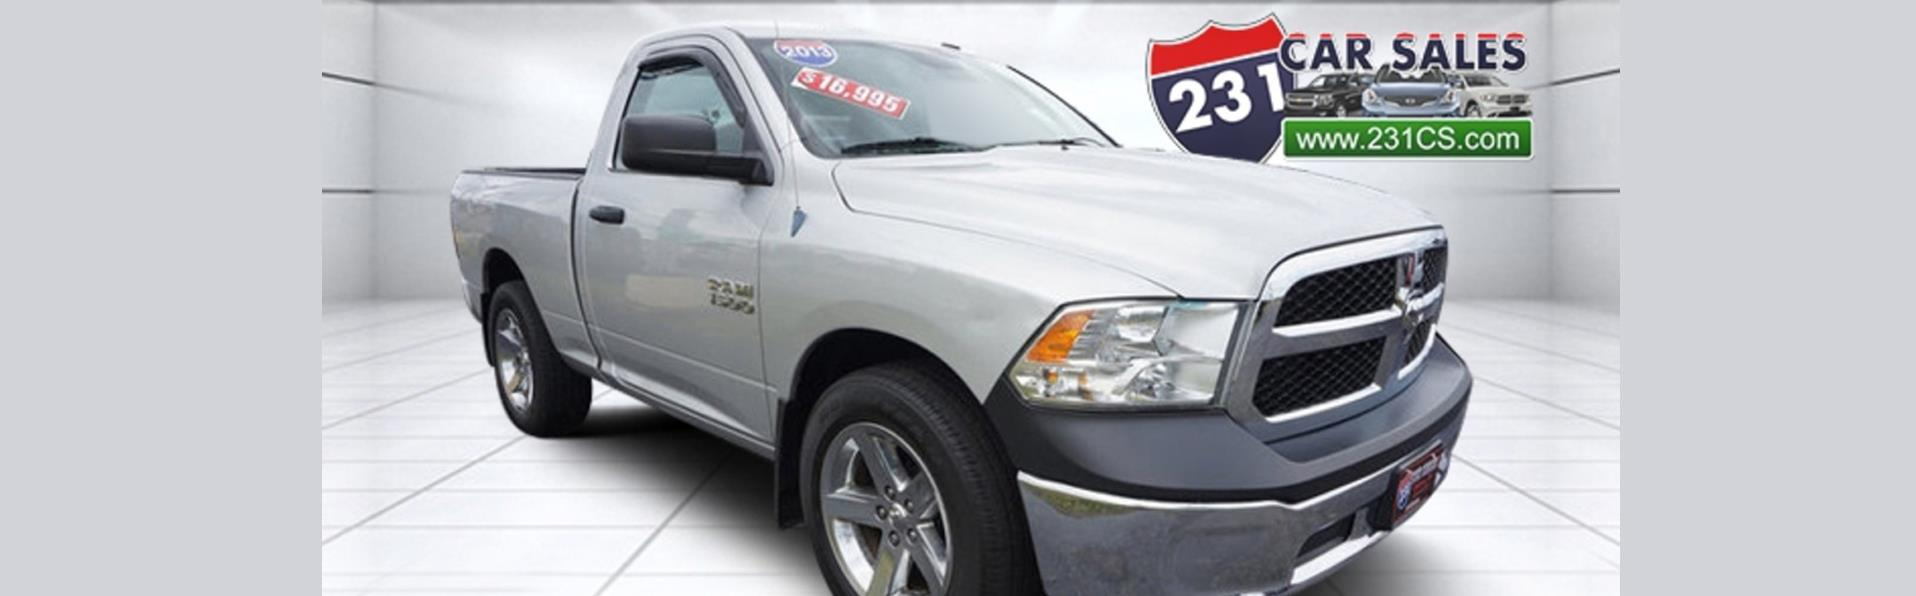 Used Cars Lebanon TN | Used Cars & Trucks TN | 231 Car Sales